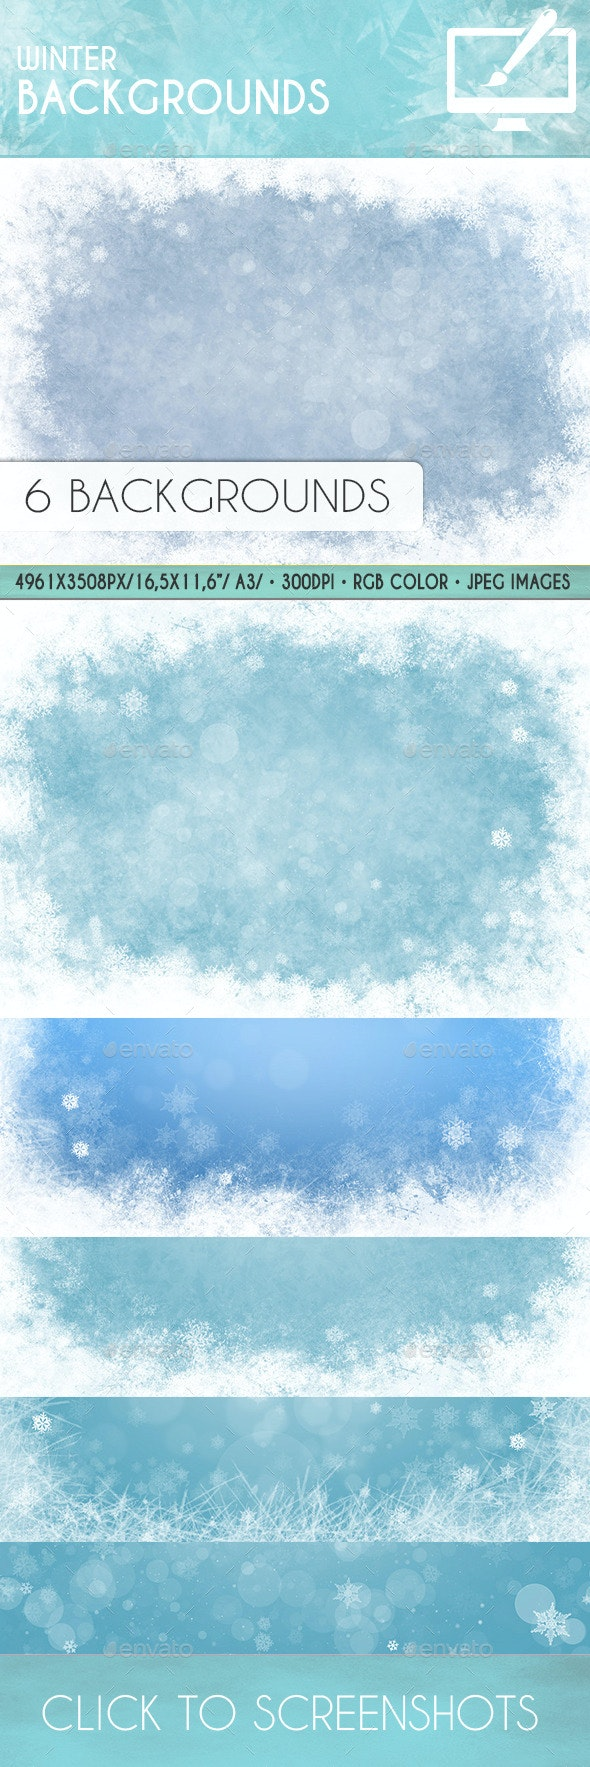 Winter Backgrounds - Backgrounds Graphics